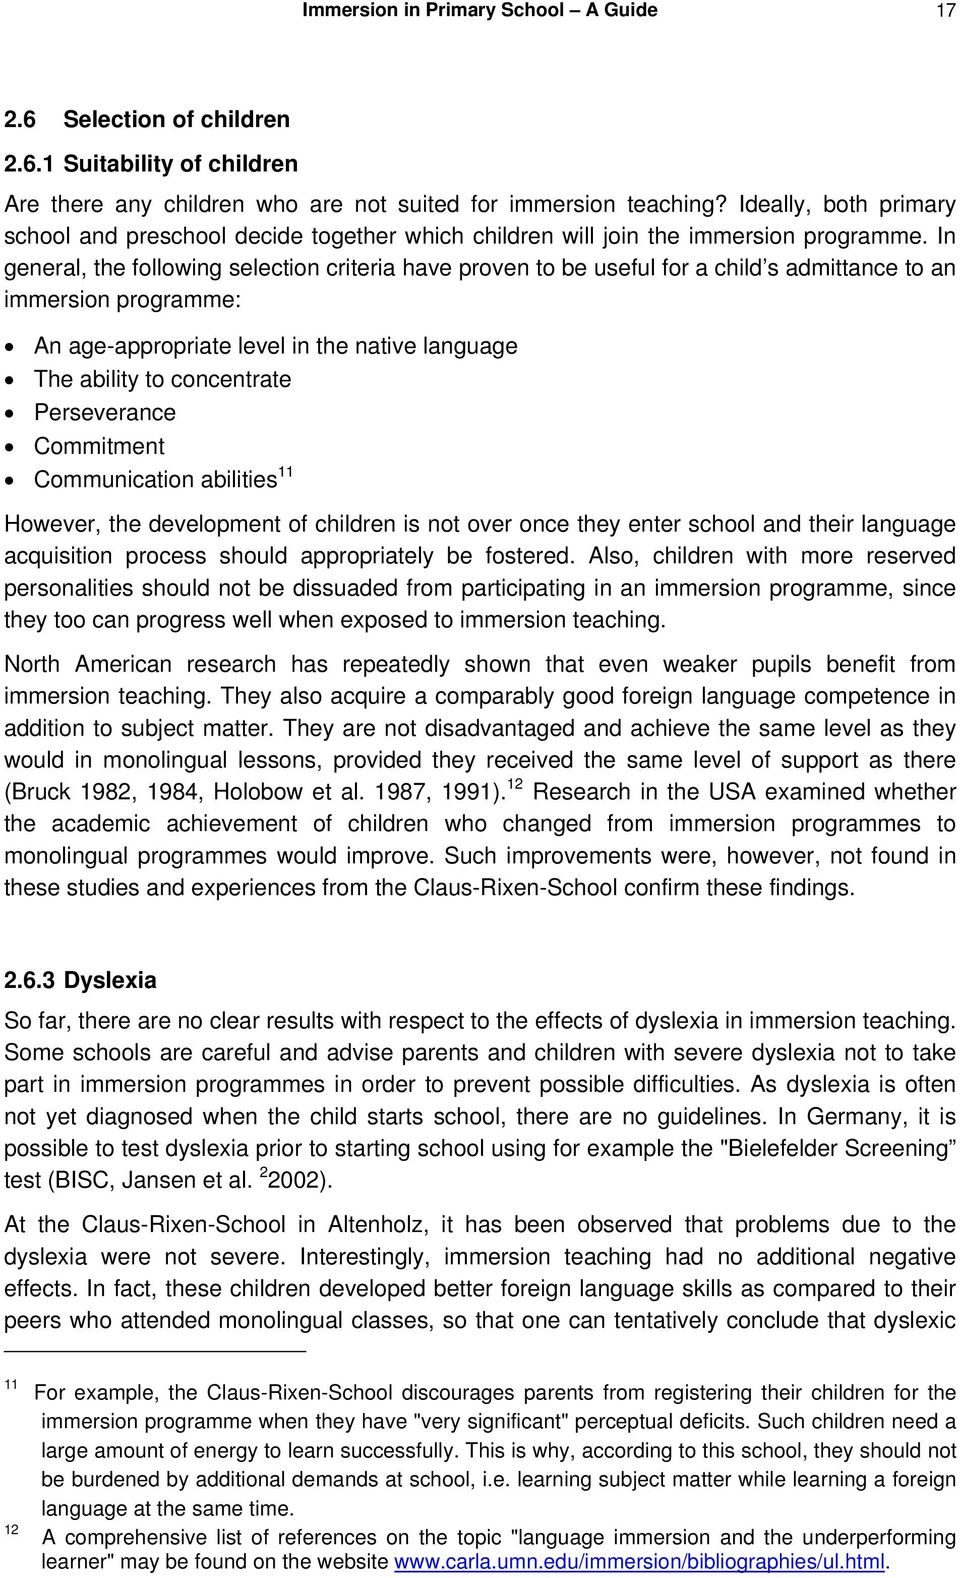 In general, the following selection criteria have proven to be useful for a child s admittance to an immersion programme: An age-appropriate level in the native language The ability to concentrate